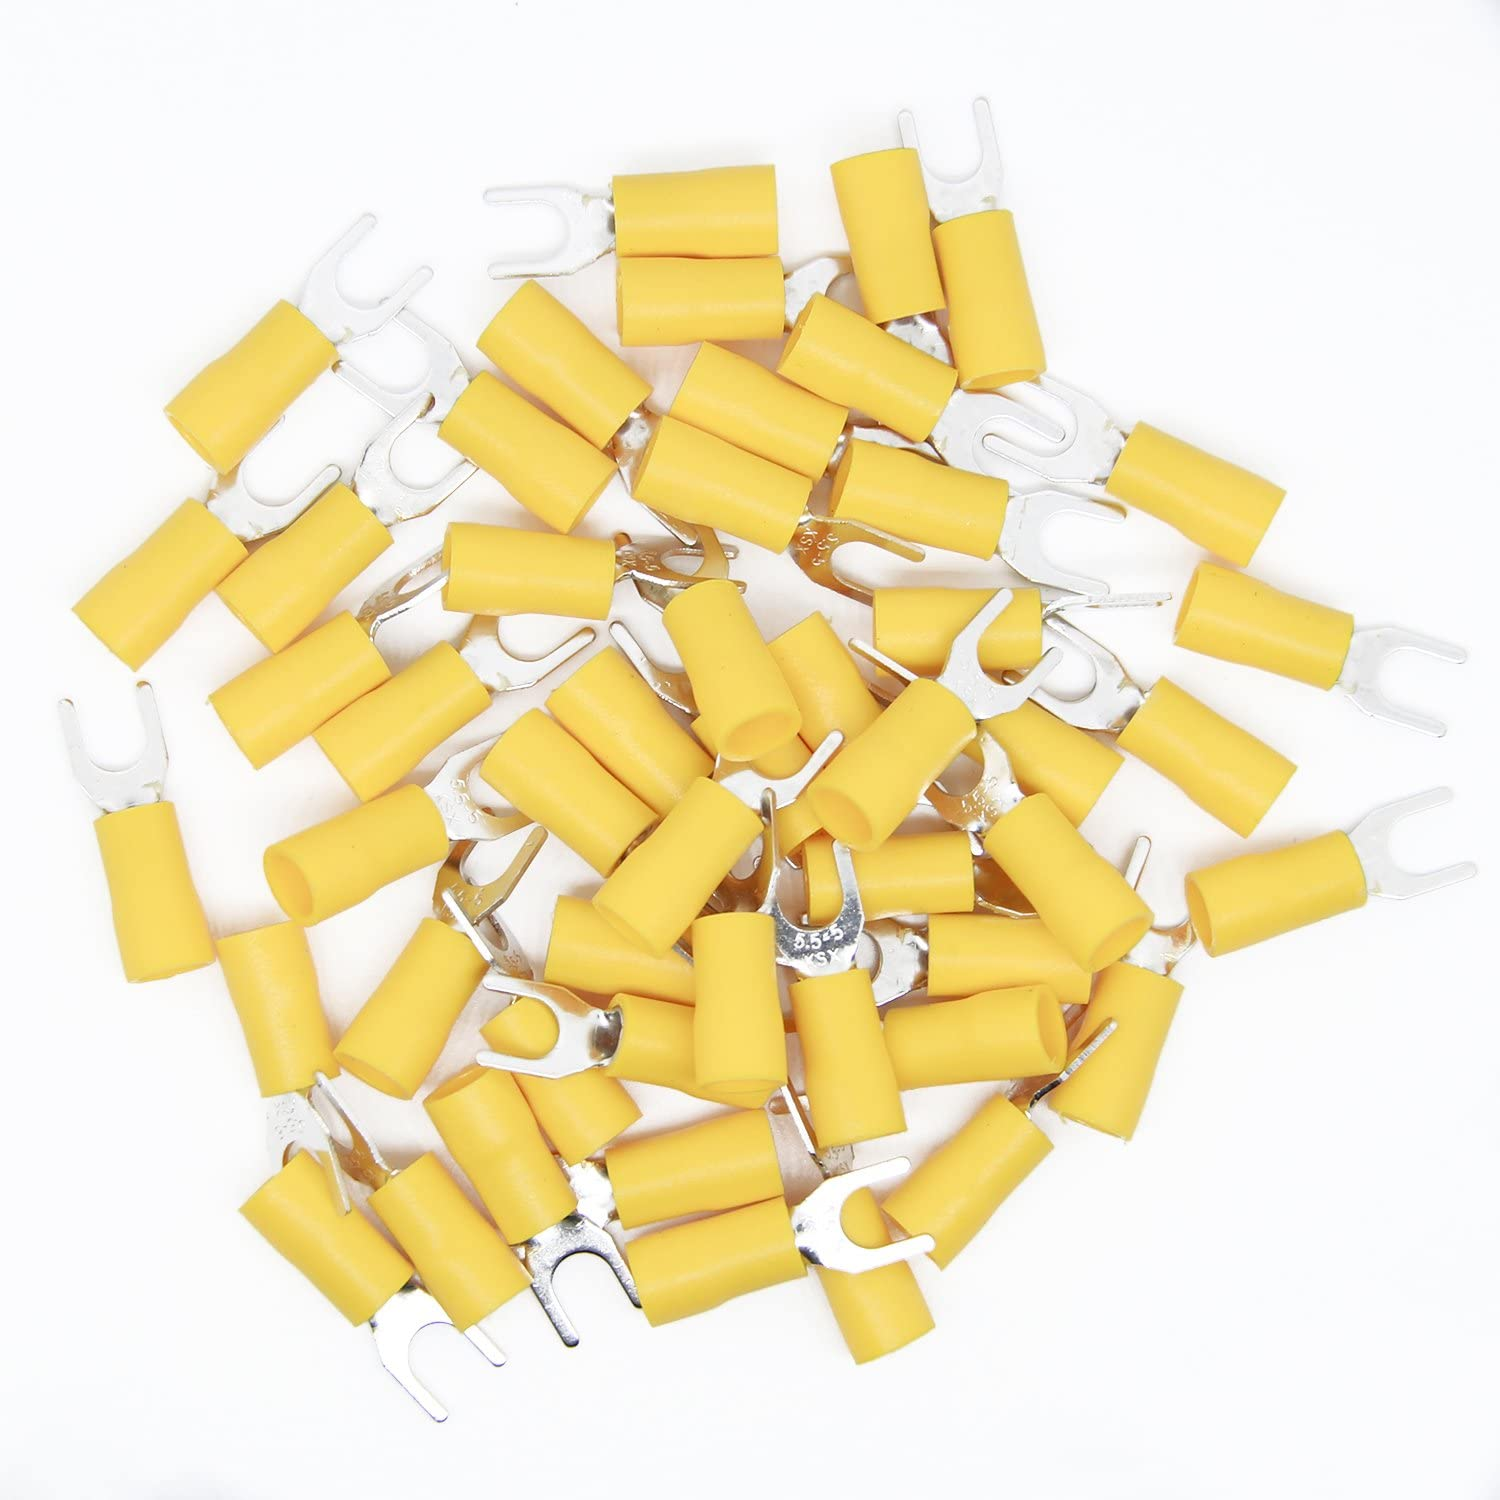 uxcell Heat Shrink Wire Connectors Wire Crimp Connectors Yellow for 12-10AWG 50Pcs